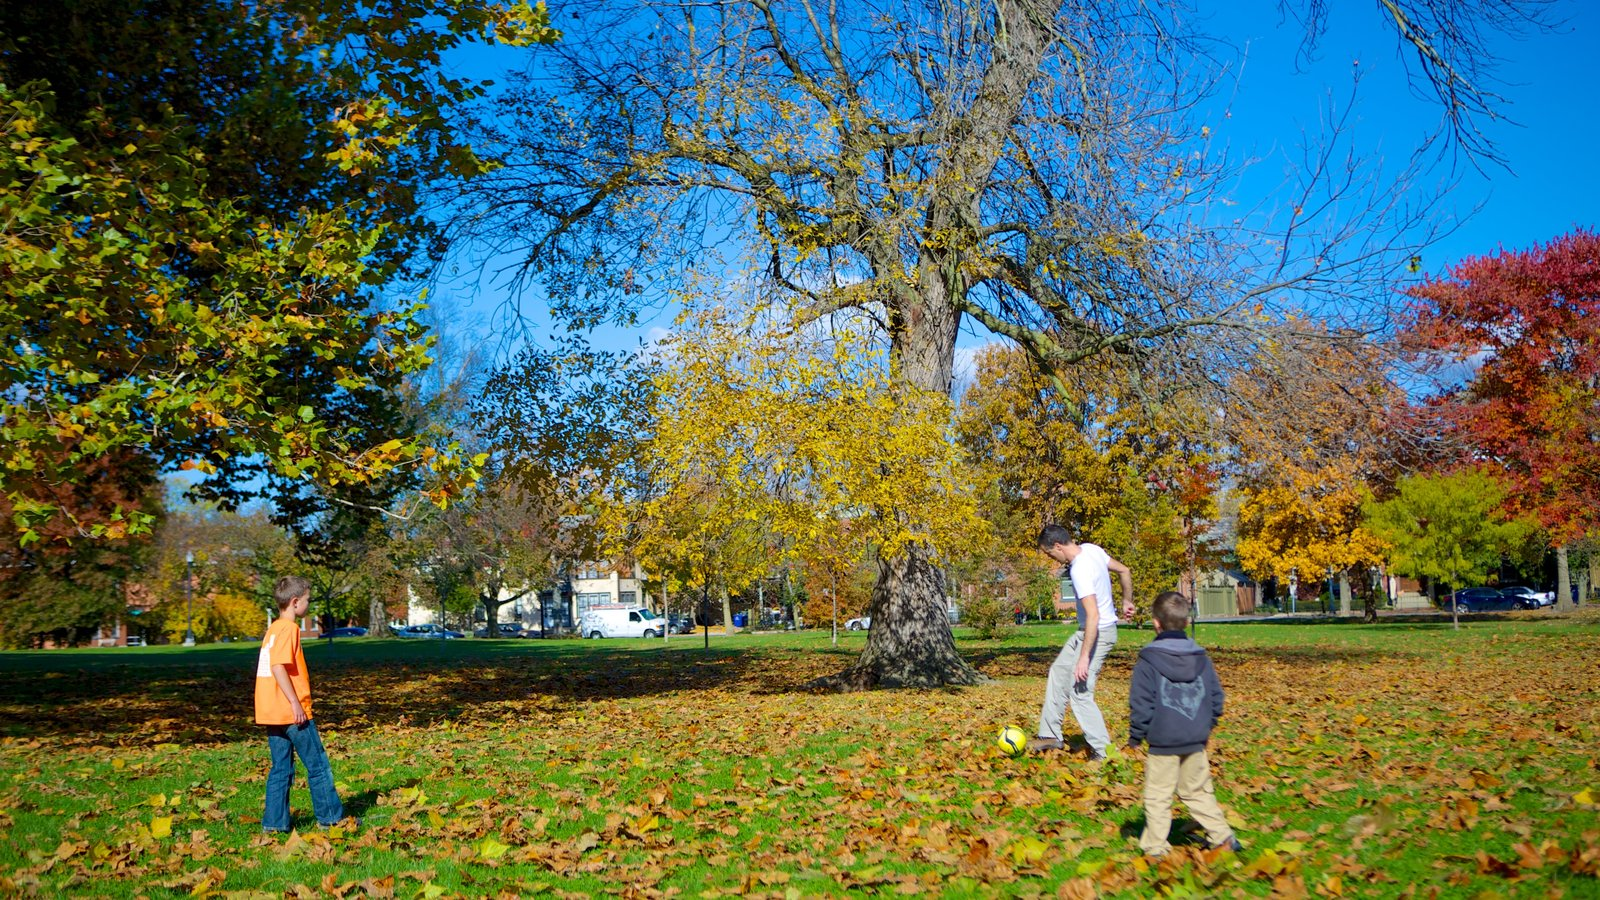 Schiller Park showing a park and autumn leaves as well as a family